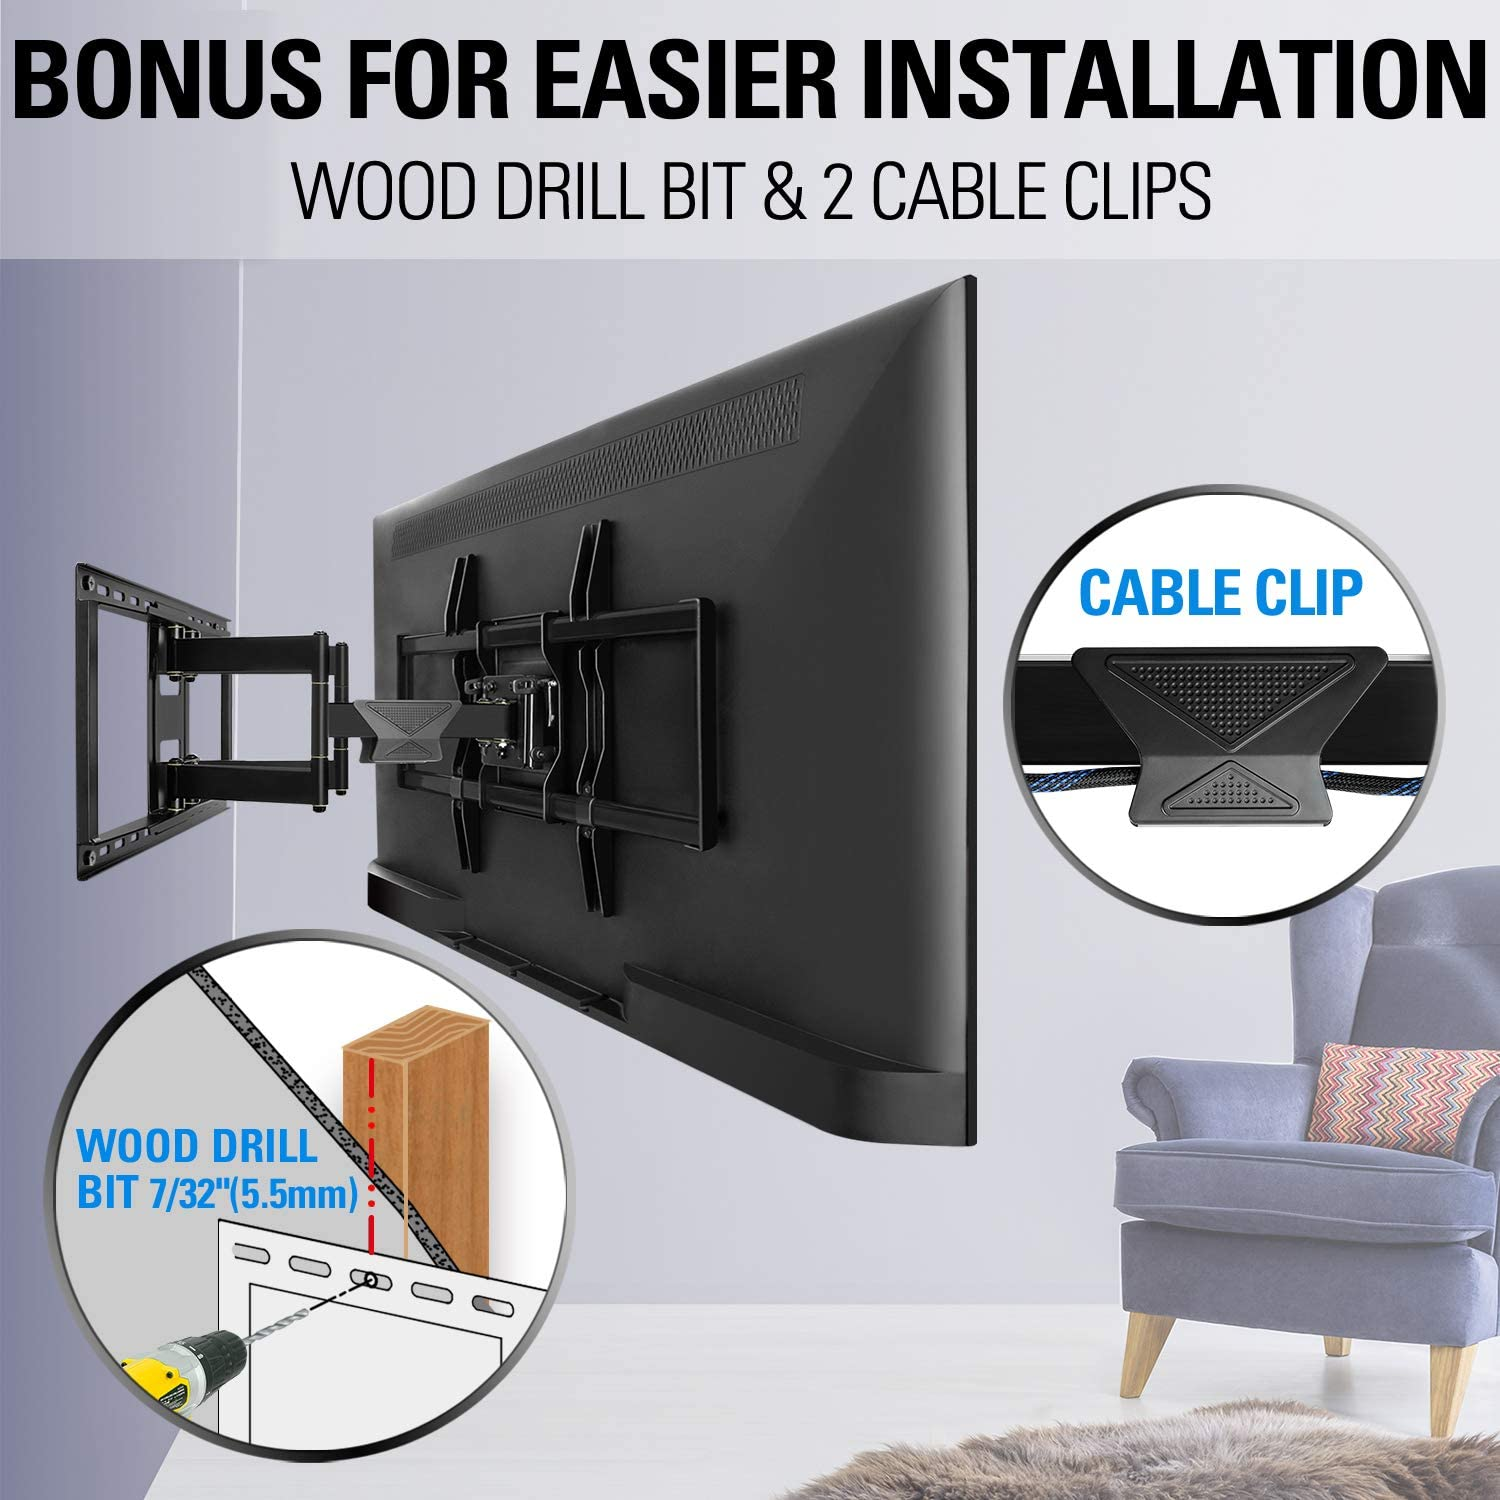 Mounting Dream TV Wall Mount TV Bracket for 42-84 Inch TVs, Universal Full Motion TV Mount with Articulating Arms, Max VESA 800x400mm 132 lbs. Loading, Easy to Install on 16